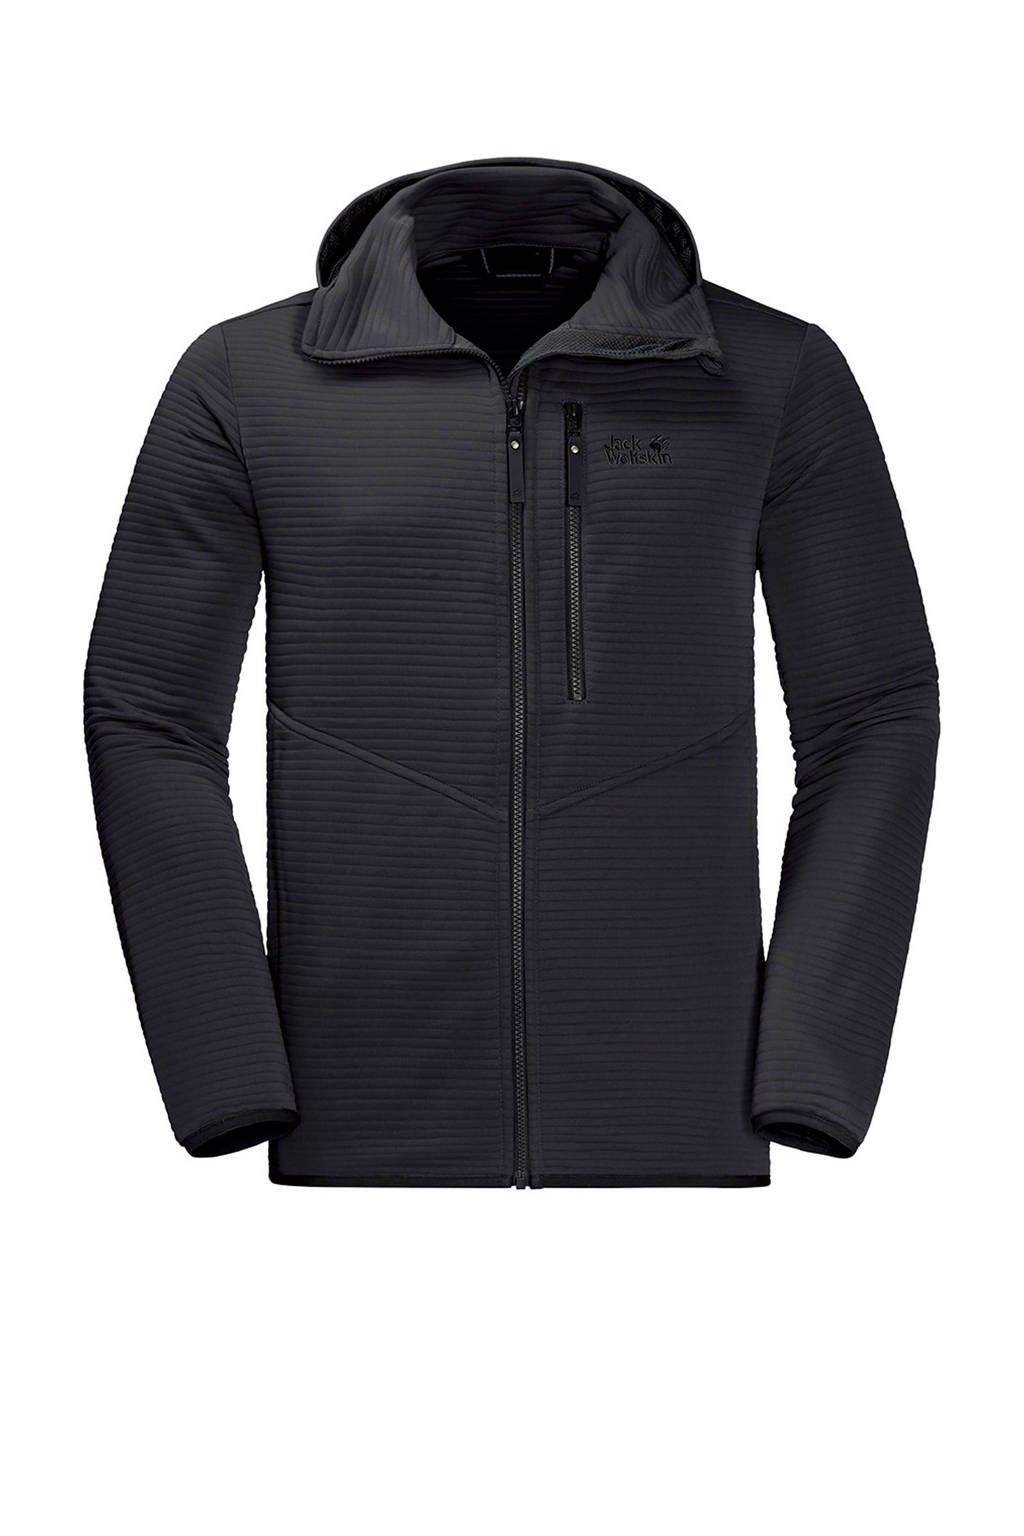 Jack Wolfskin   Modesto Hooded outdoor fleecejack, Zwart